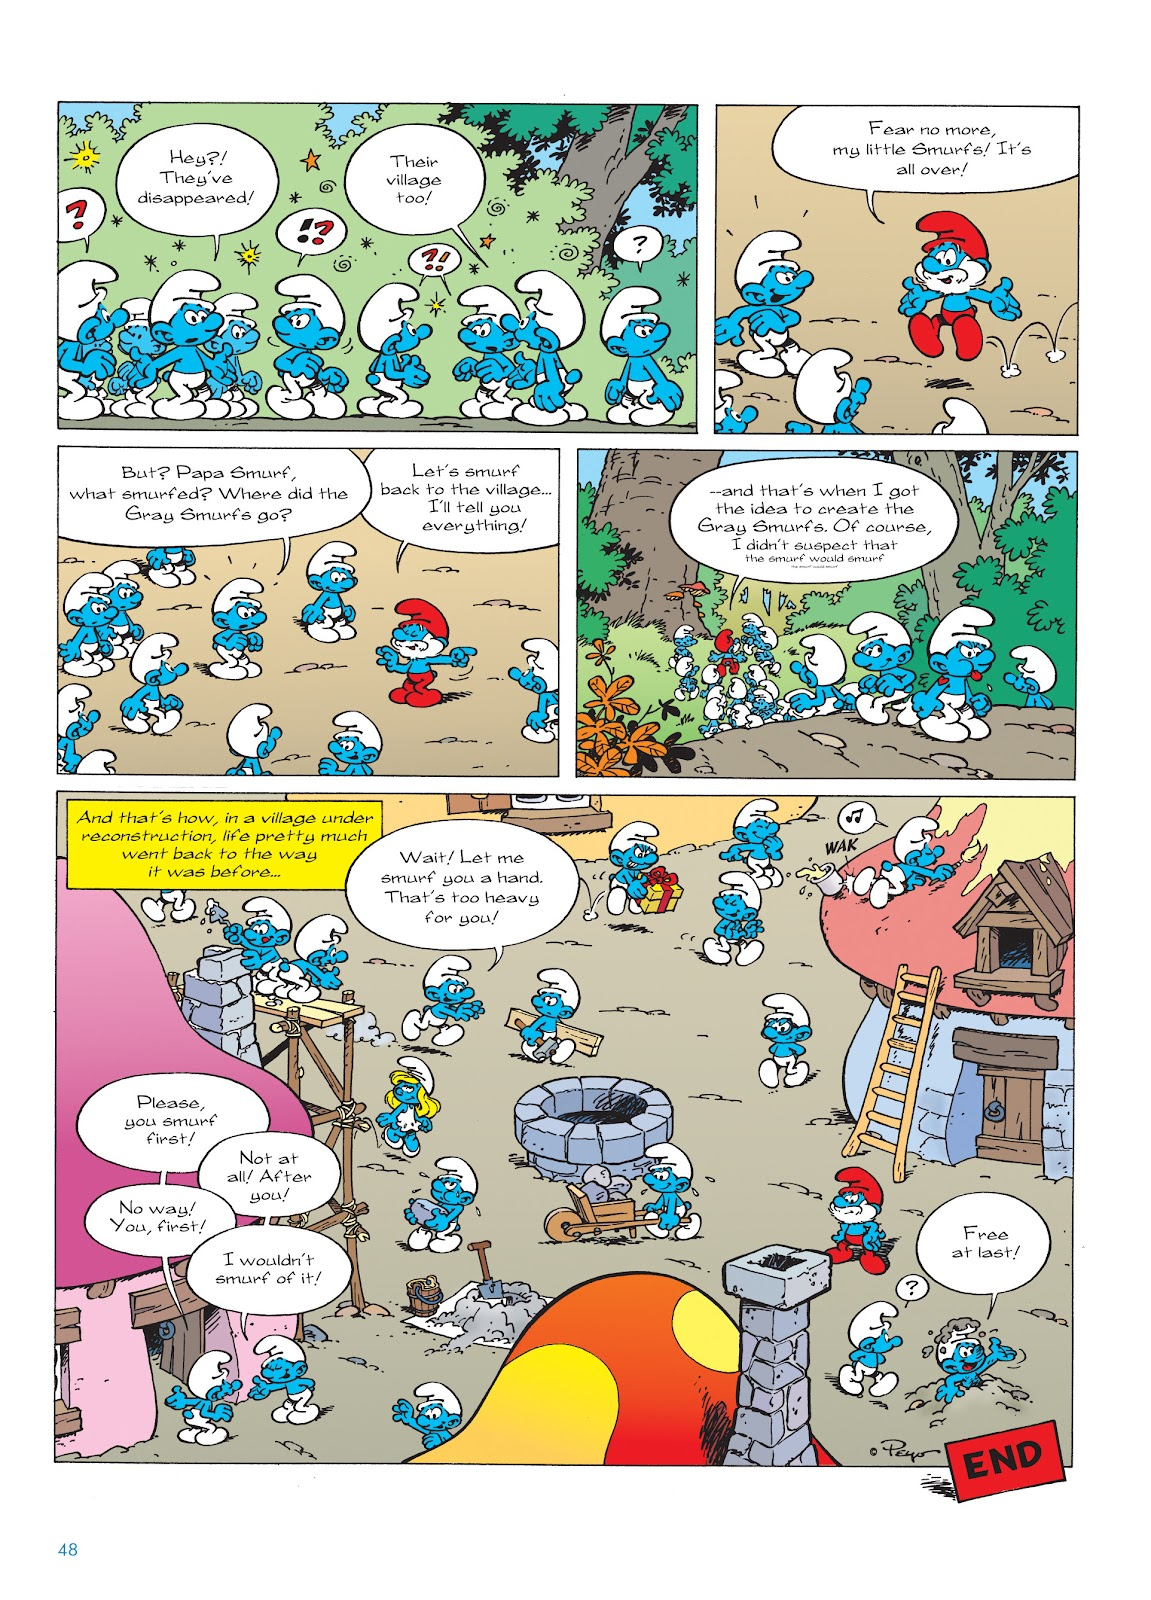 Read online The Smurfs comic -  Issue #22 - 49